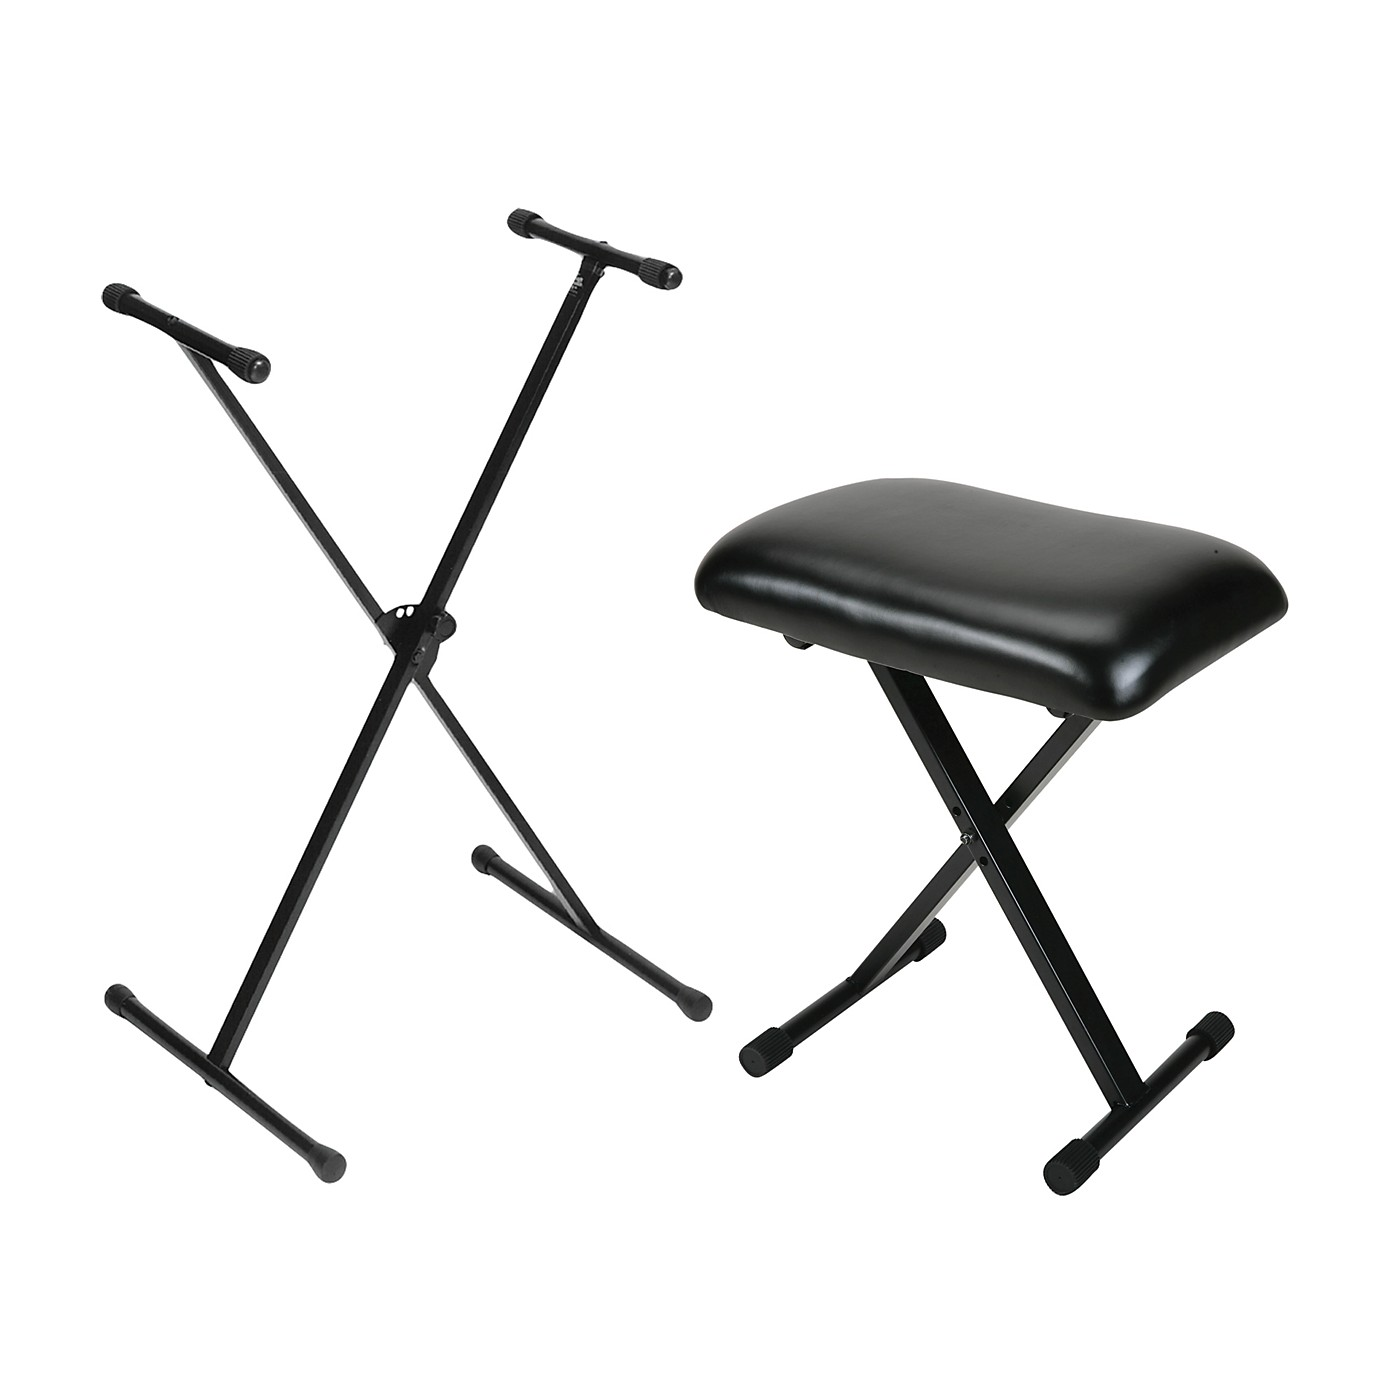 On-Stage Padded Keyboard Bench With Single-Braced Stand Combo thumbnail